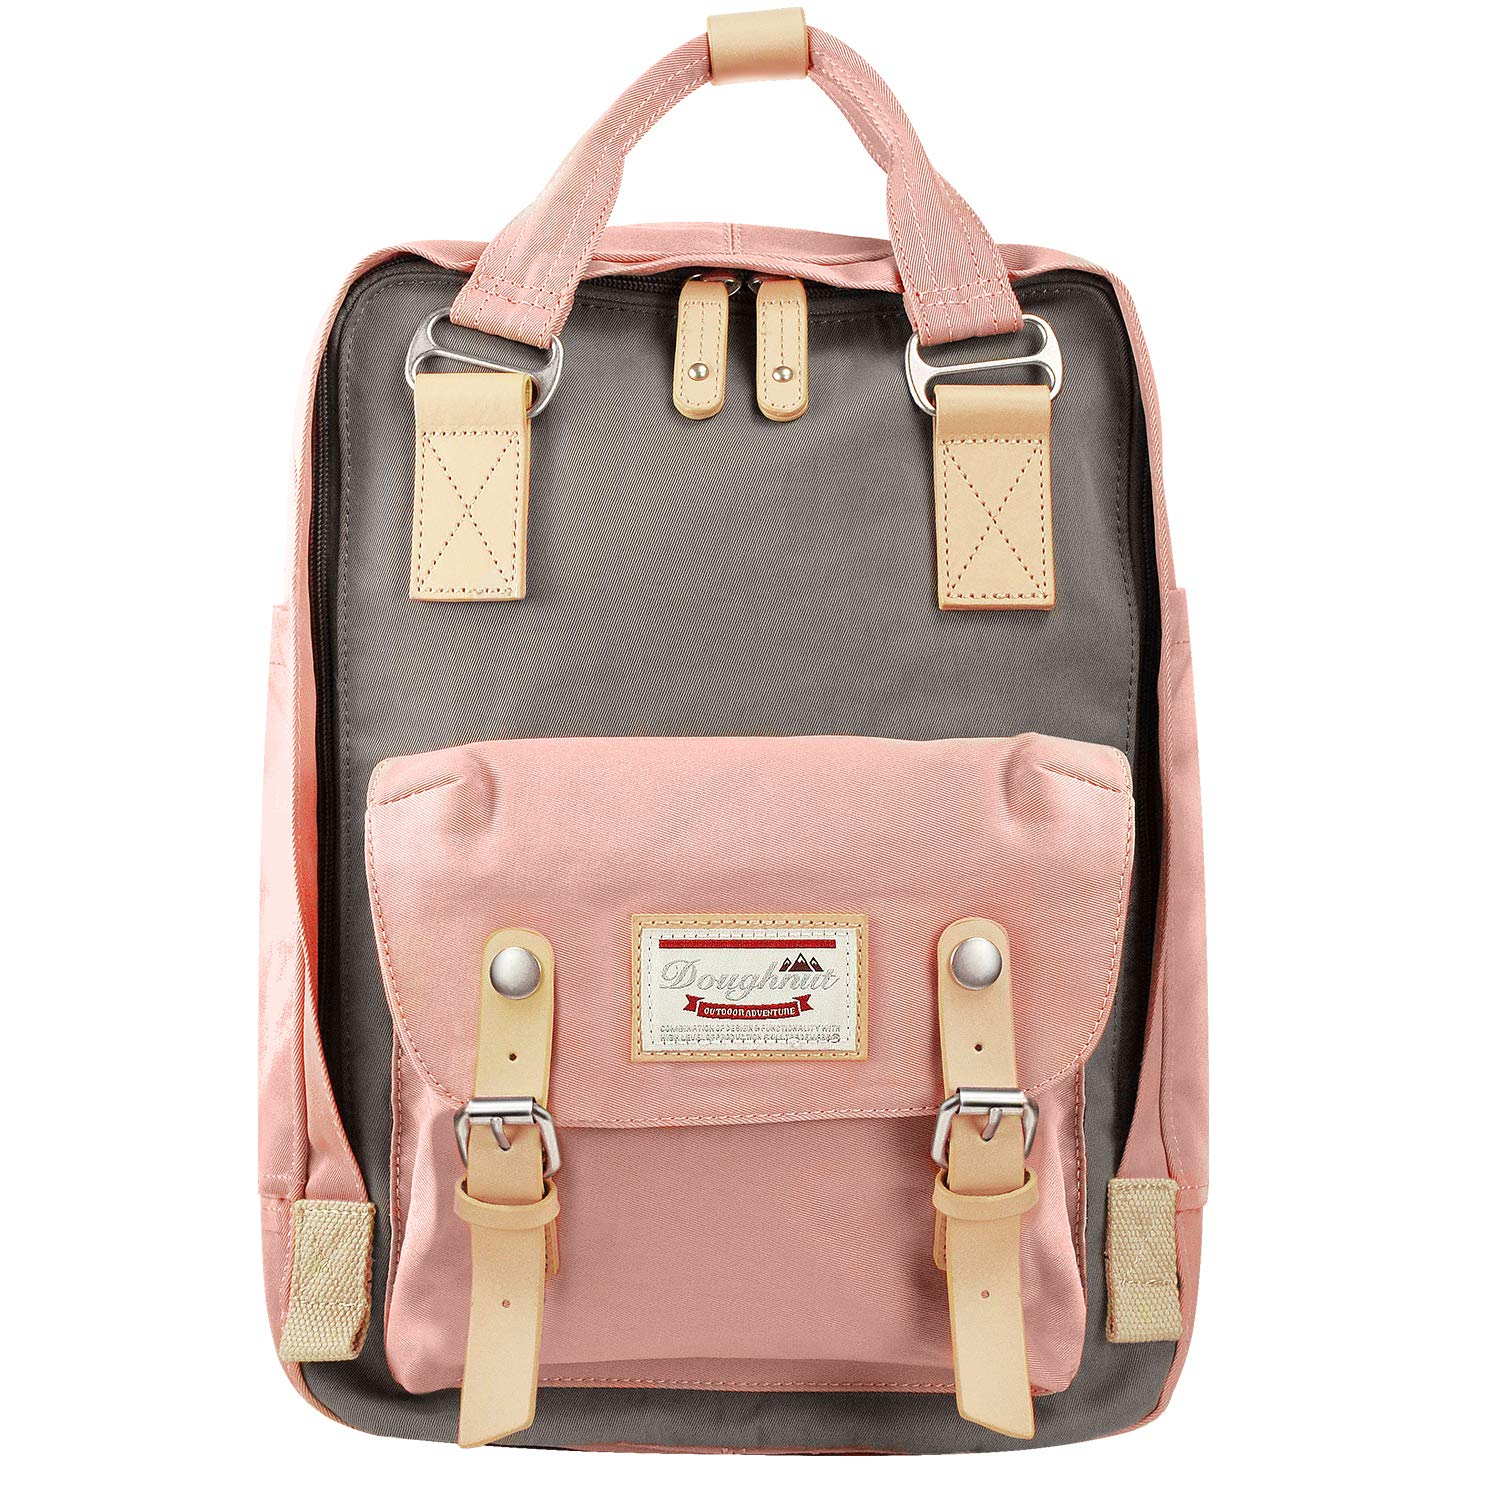 EXCPDT College Backpack, School Computer Laptop Bag Light Weight Business Travel Backpack for Women Girls, High School/College Student, Fits 13-14 inch Laptop (Pink&Gray) by EXCPDT